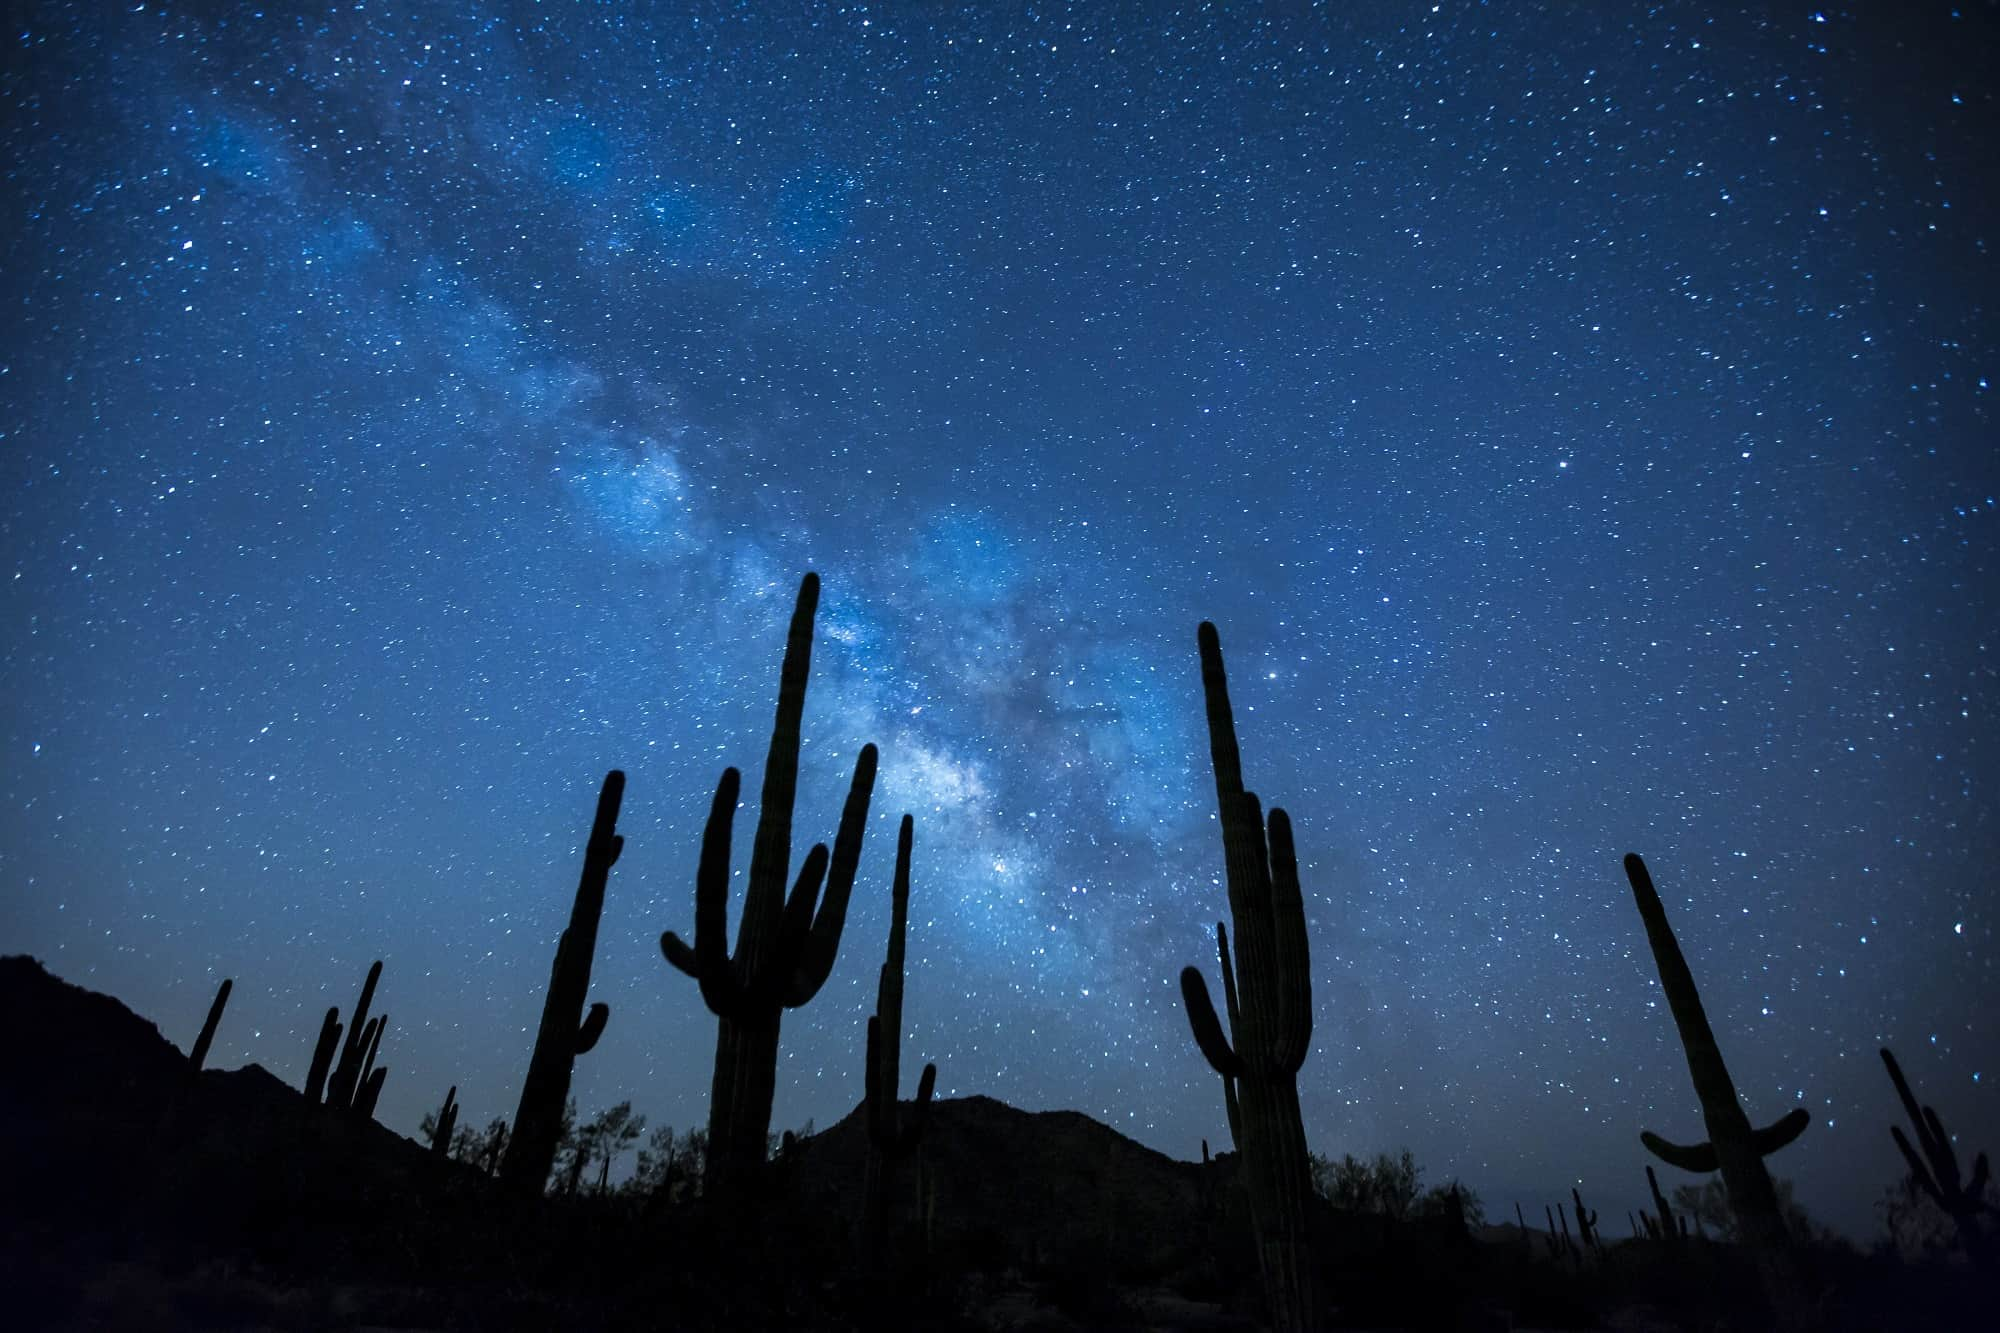 The dream: Being out in the boondocks where I can see the Milky Way with my own two eyes.